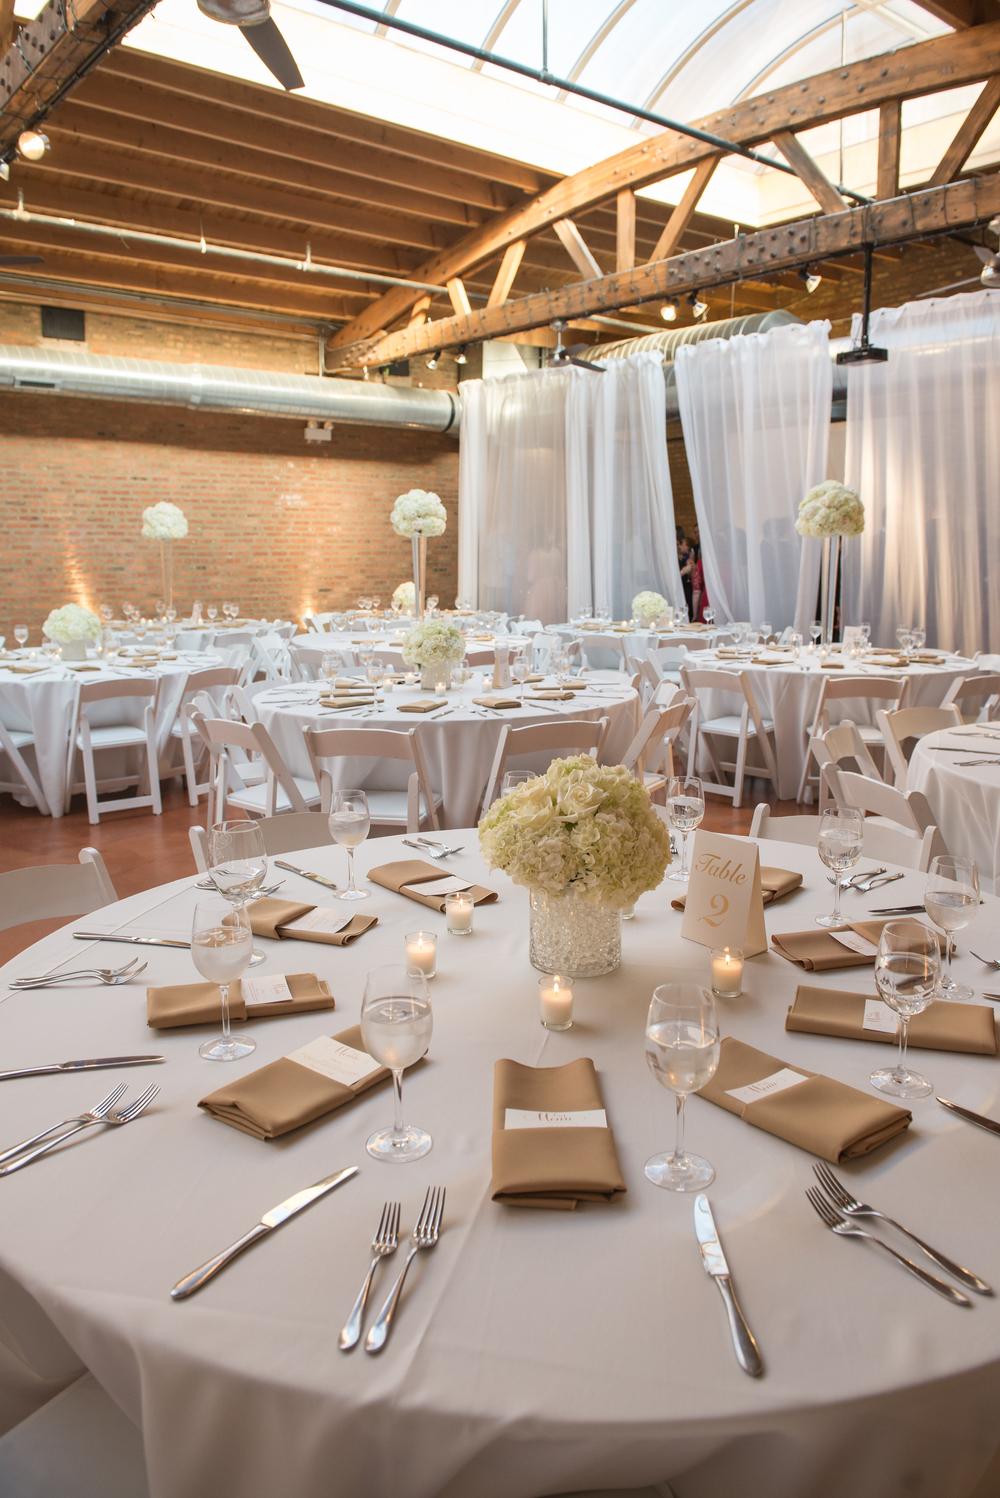 Venue:  Loft on Lake  | Photography:  Thara Photo  | Planning:  Elisa , The Simply Elegant Group | Draping:  Art of Imagination  | Floral:    Gratitude Heart Garden  | Catering:  FireFly  | Cake:  West Town Bakery  | Bar:  Binny's  | Reception:  Toast & Jam Transportation:  Windy City Limo